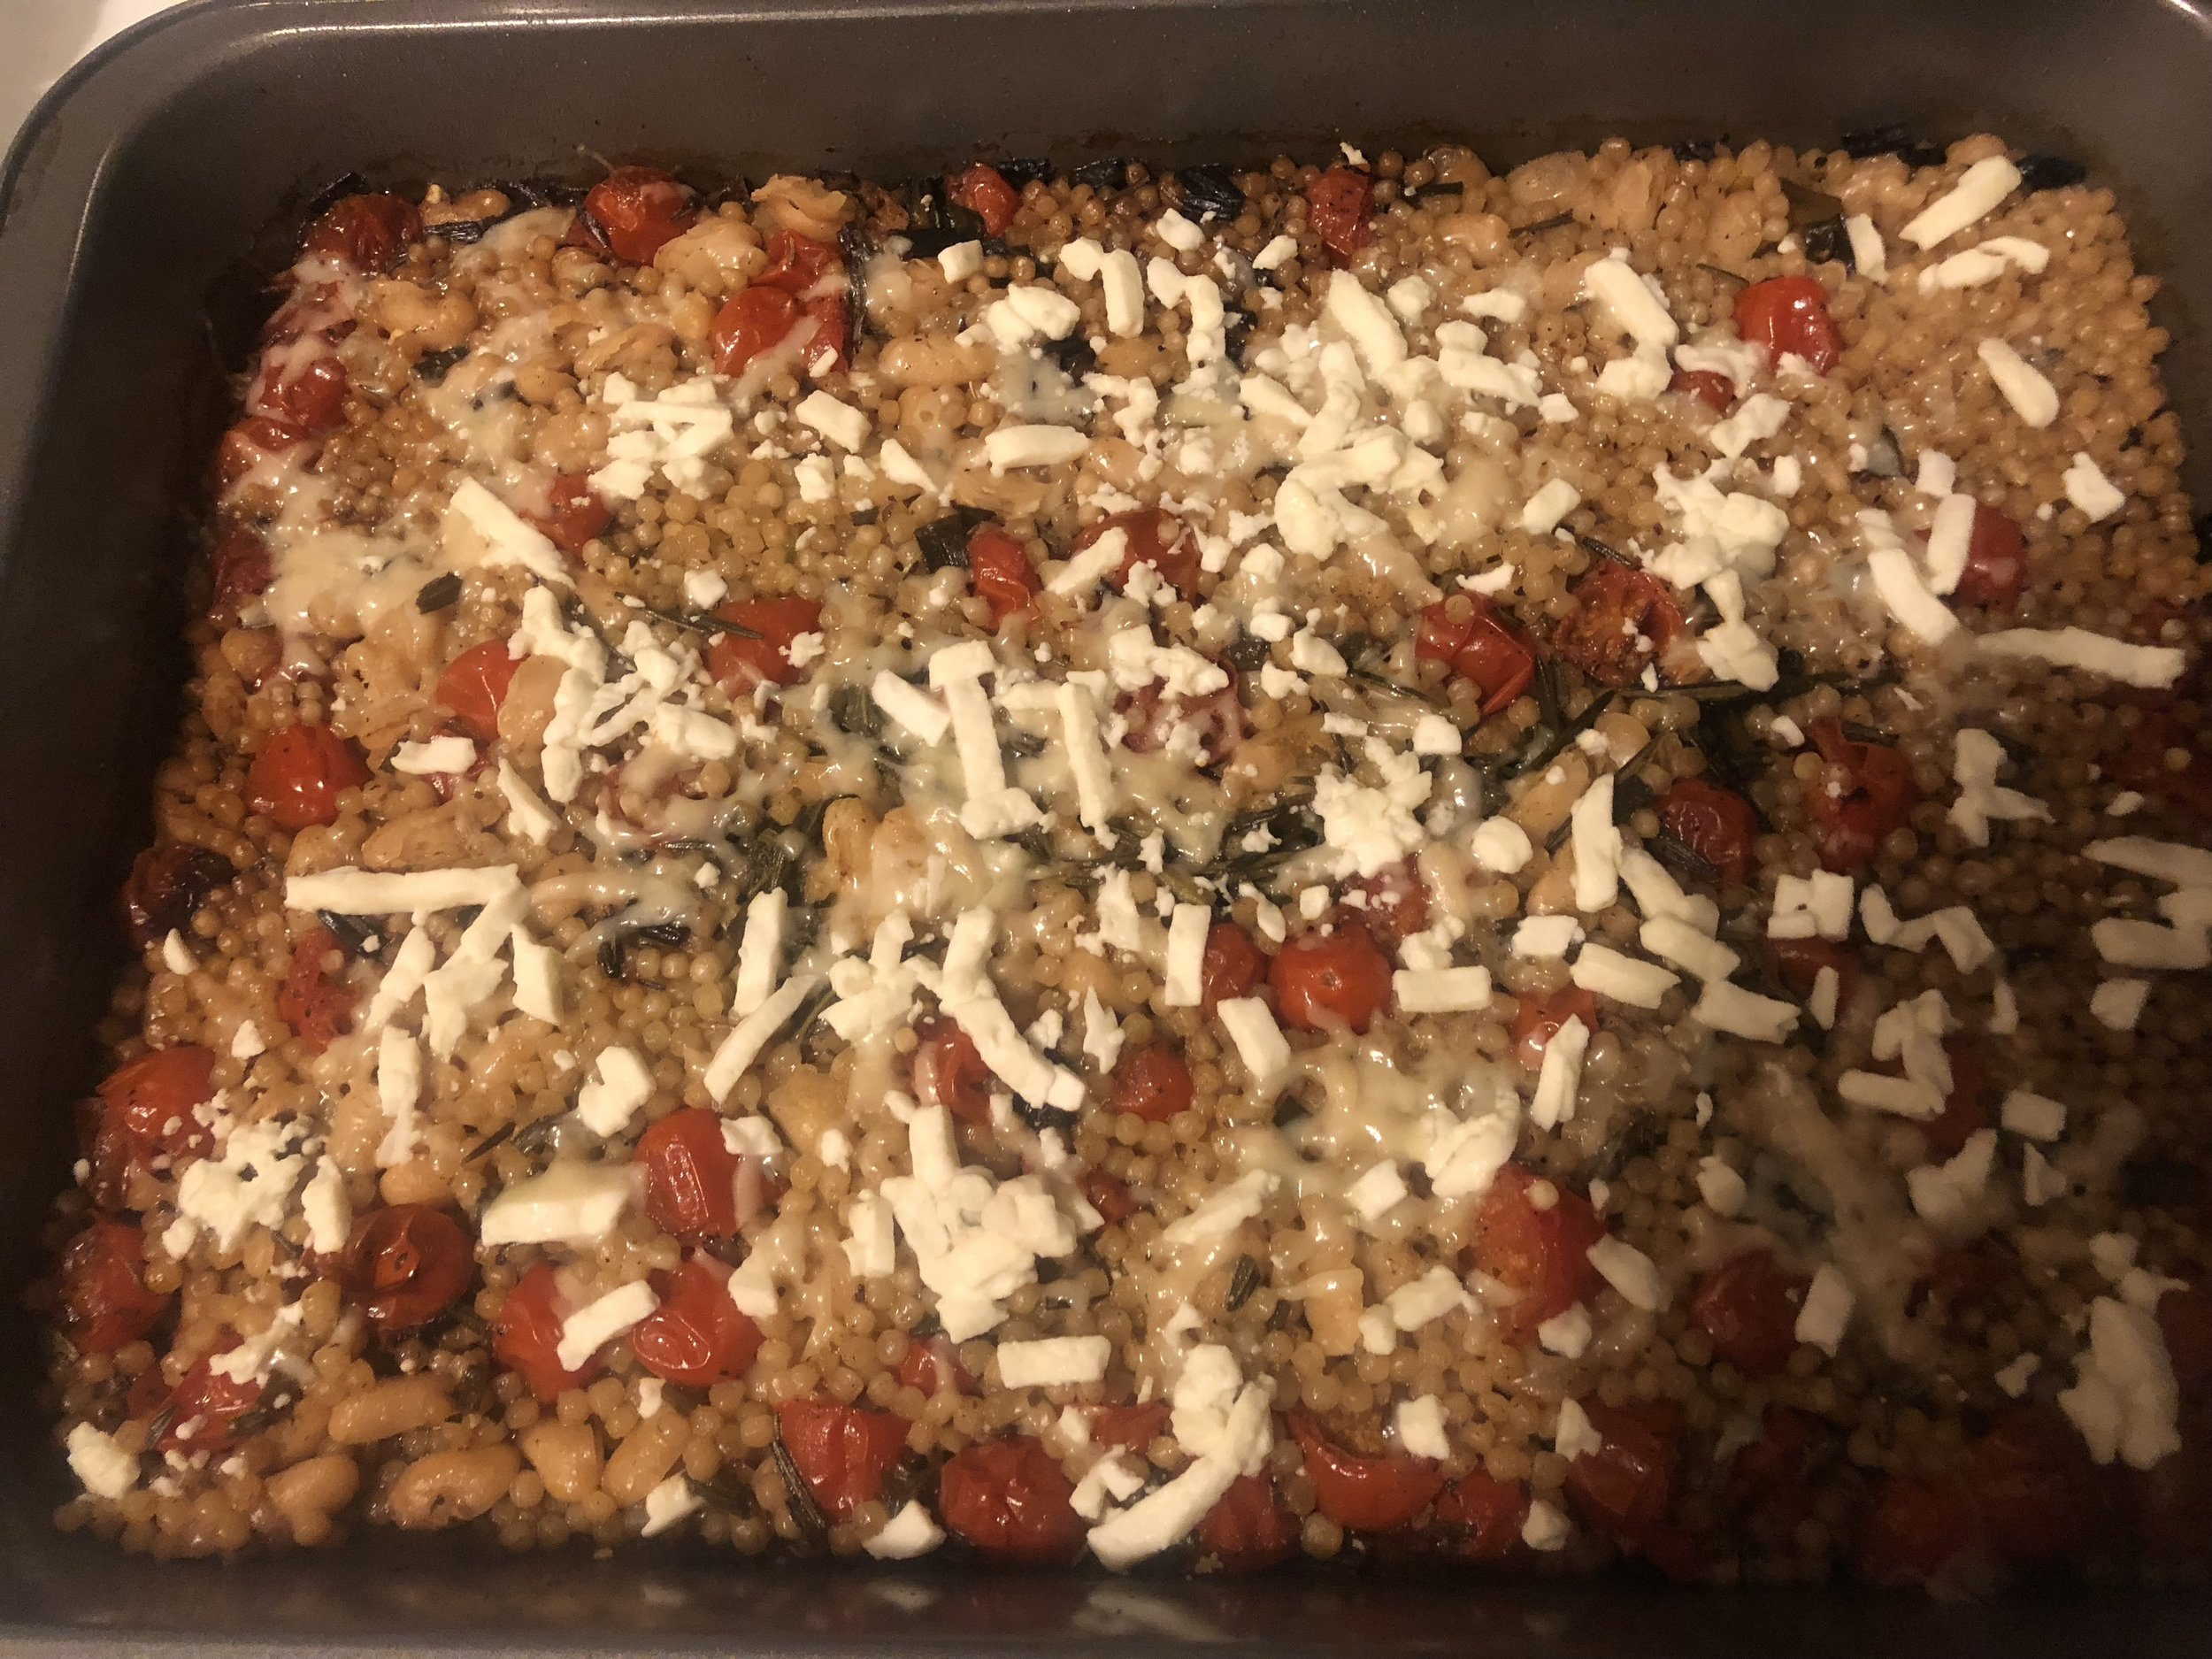 ingredients  Pint of grape tomatoes  cup of feta  0.5 cup of shredded parmesan  3 sprigs of oregano  bunch of scallions  2 tsp of balsamic vinegar  1.5 cup of pearl couscous  2 cups of chicken broth  salt and pepper  tsp of cumin  can of cannelloni beans  2-3 medium/massive cloves of garlic  5-6 tsp of olive oil